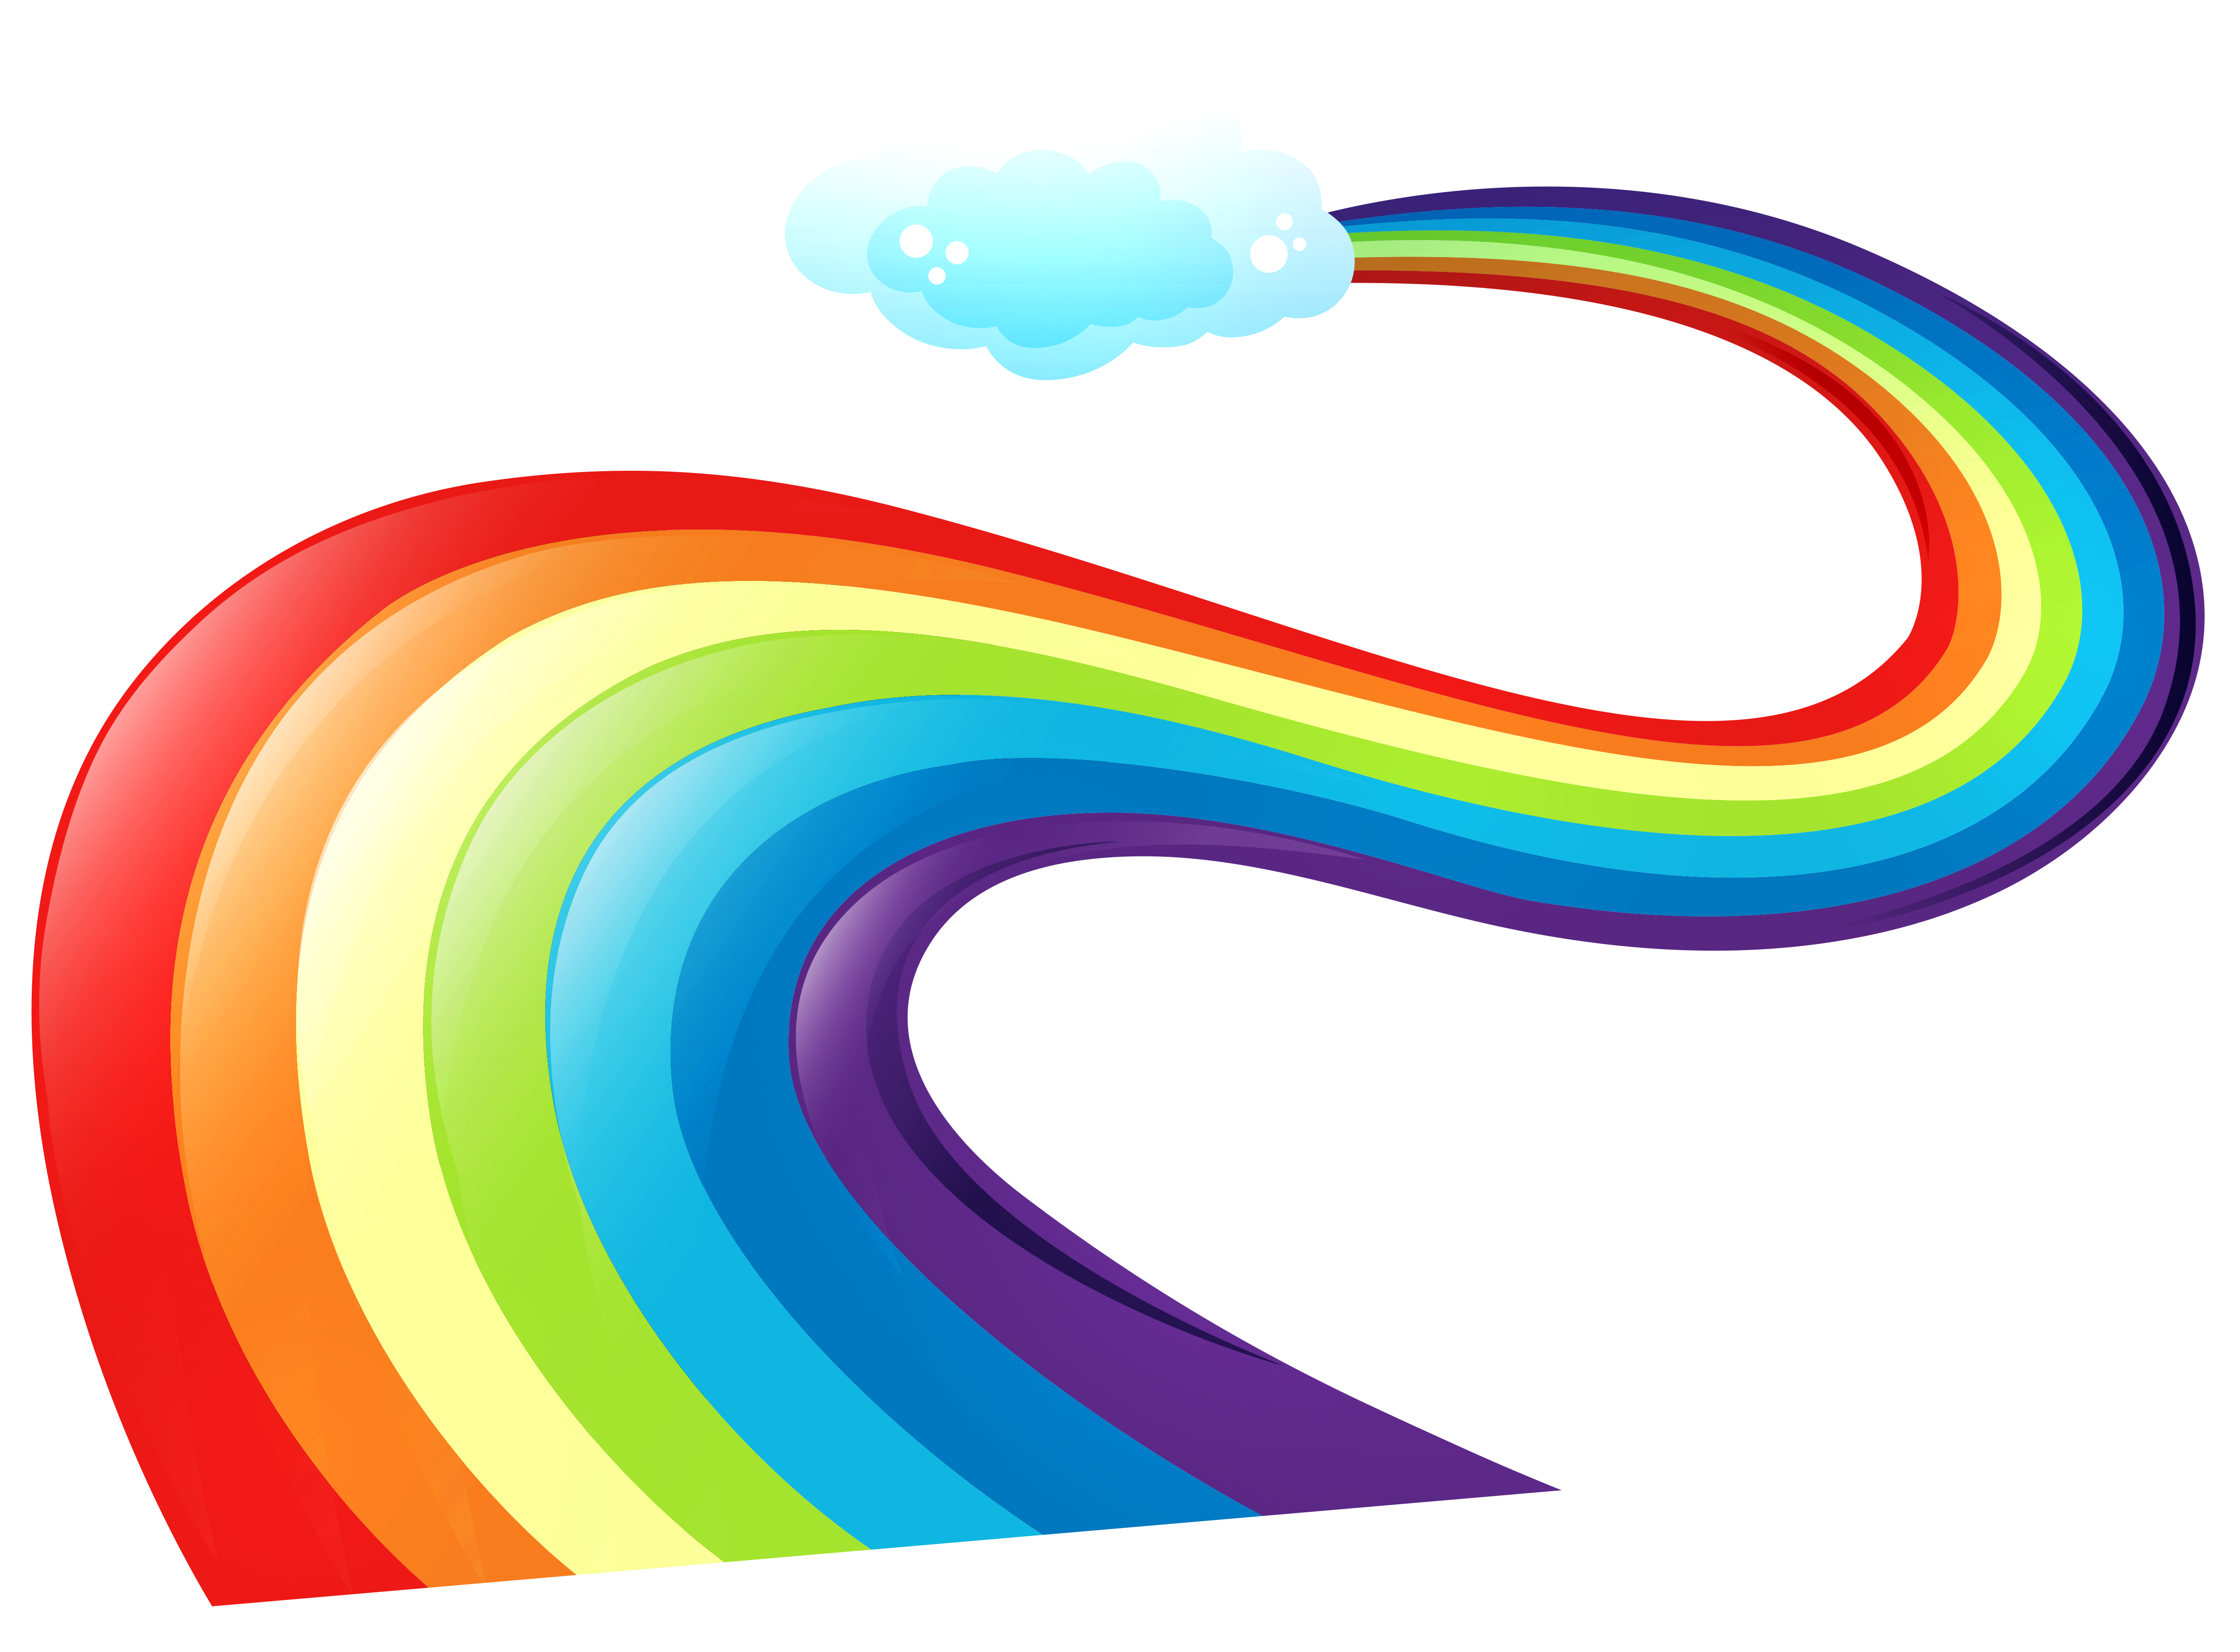 Pathway clipart transparent. Rainbow way png gallery